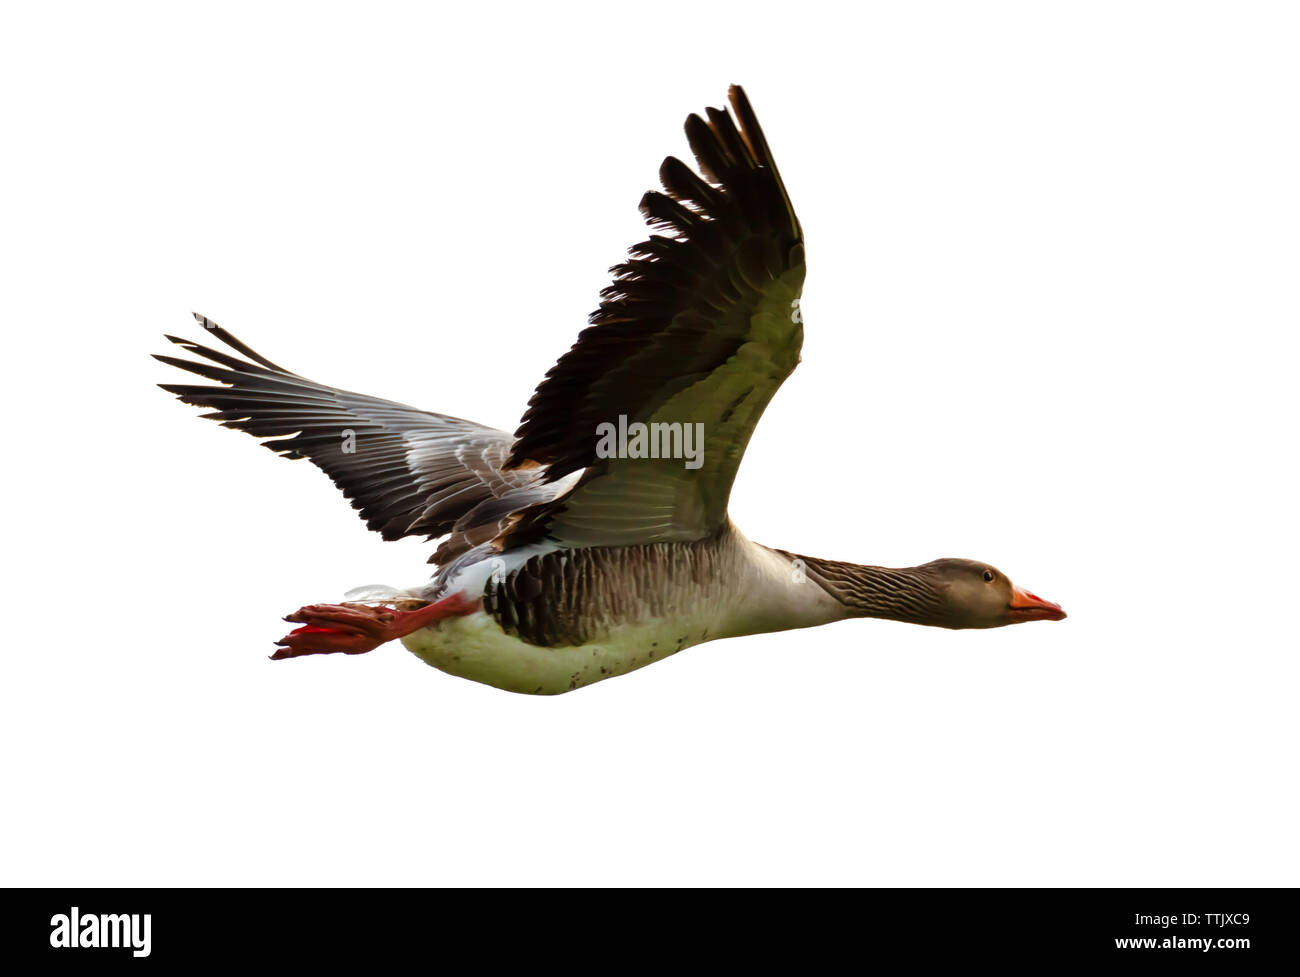 A gray goose flying from left to right, isolated on white. - Stock Image